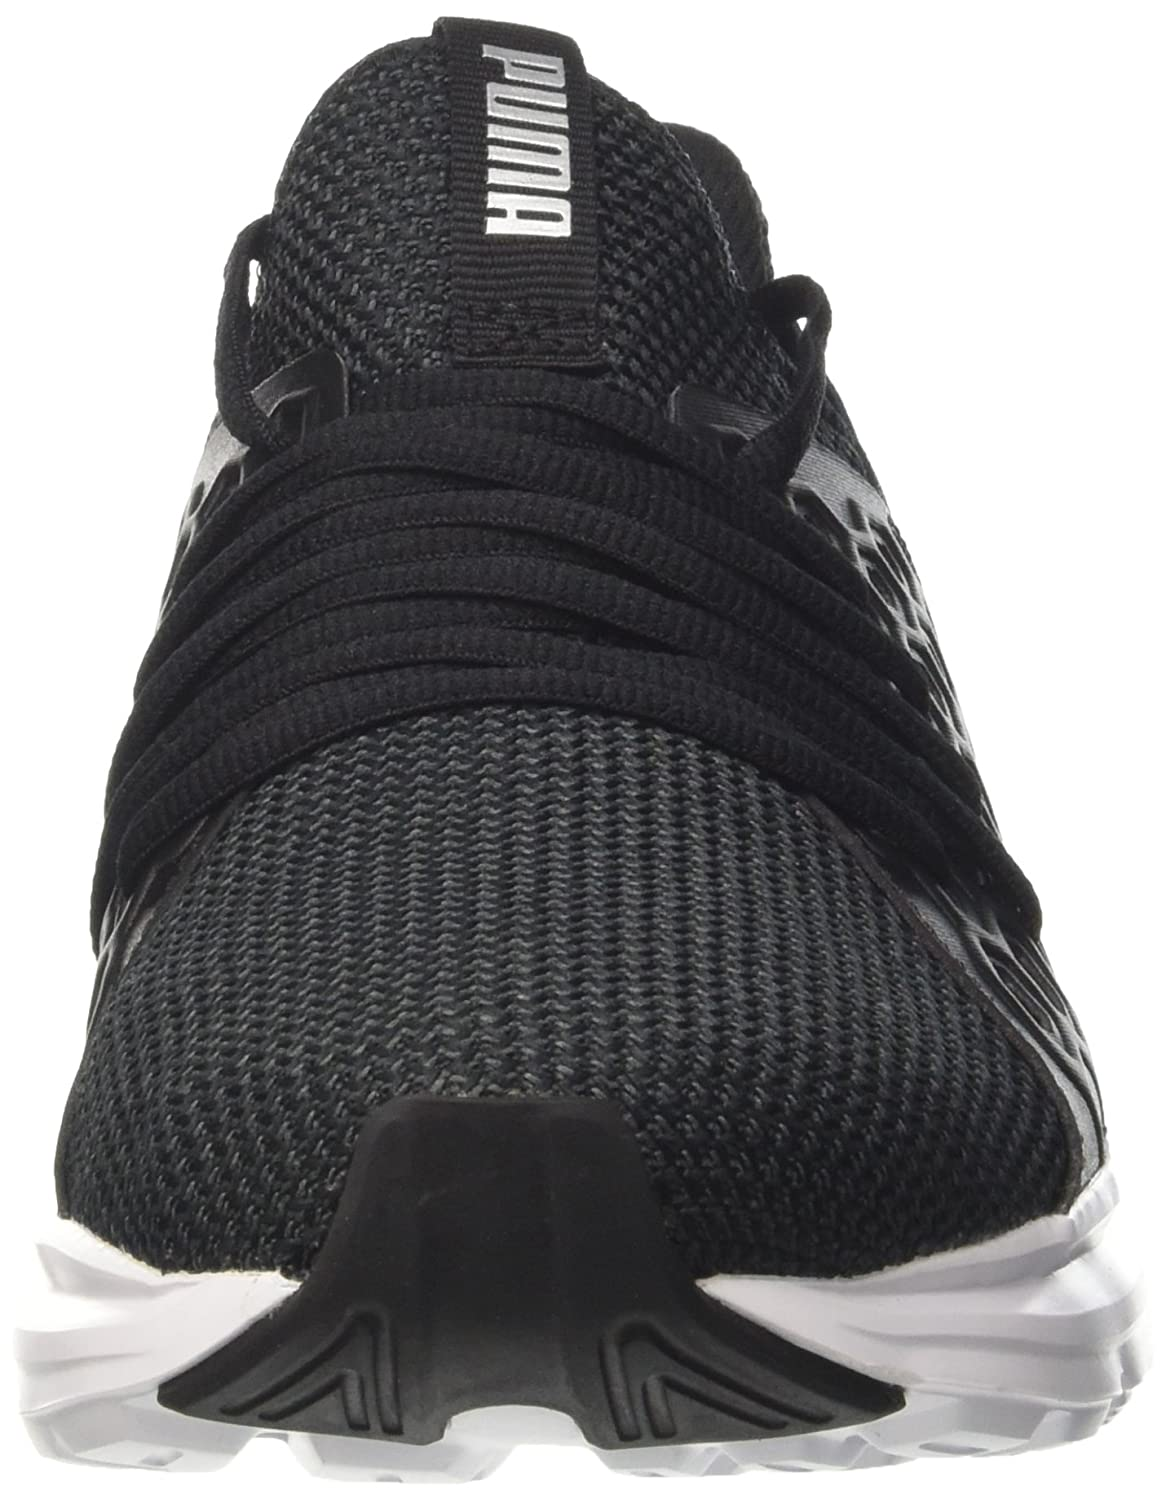 e1b754b014f7 Puma Men s Enzo Nf Black Multisport Training Shoes-12 UK India (47 EU)  (19093201)  Buy Online at Low Prices in India - Amazon.in